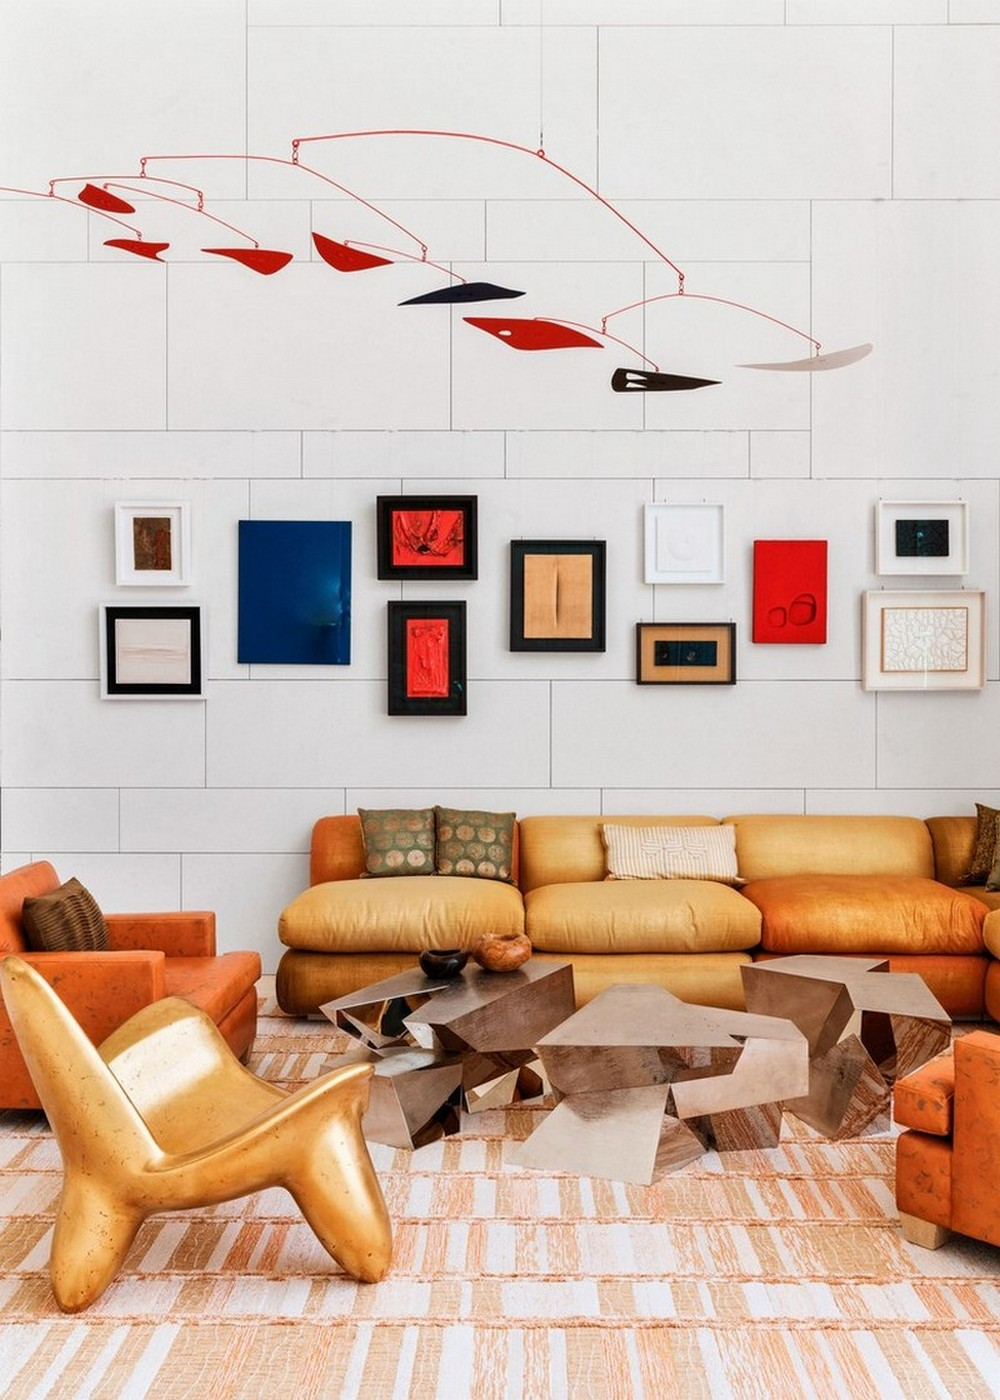 interior design projects Have a look at some of the best Interior Design Projects Peter Marino 1